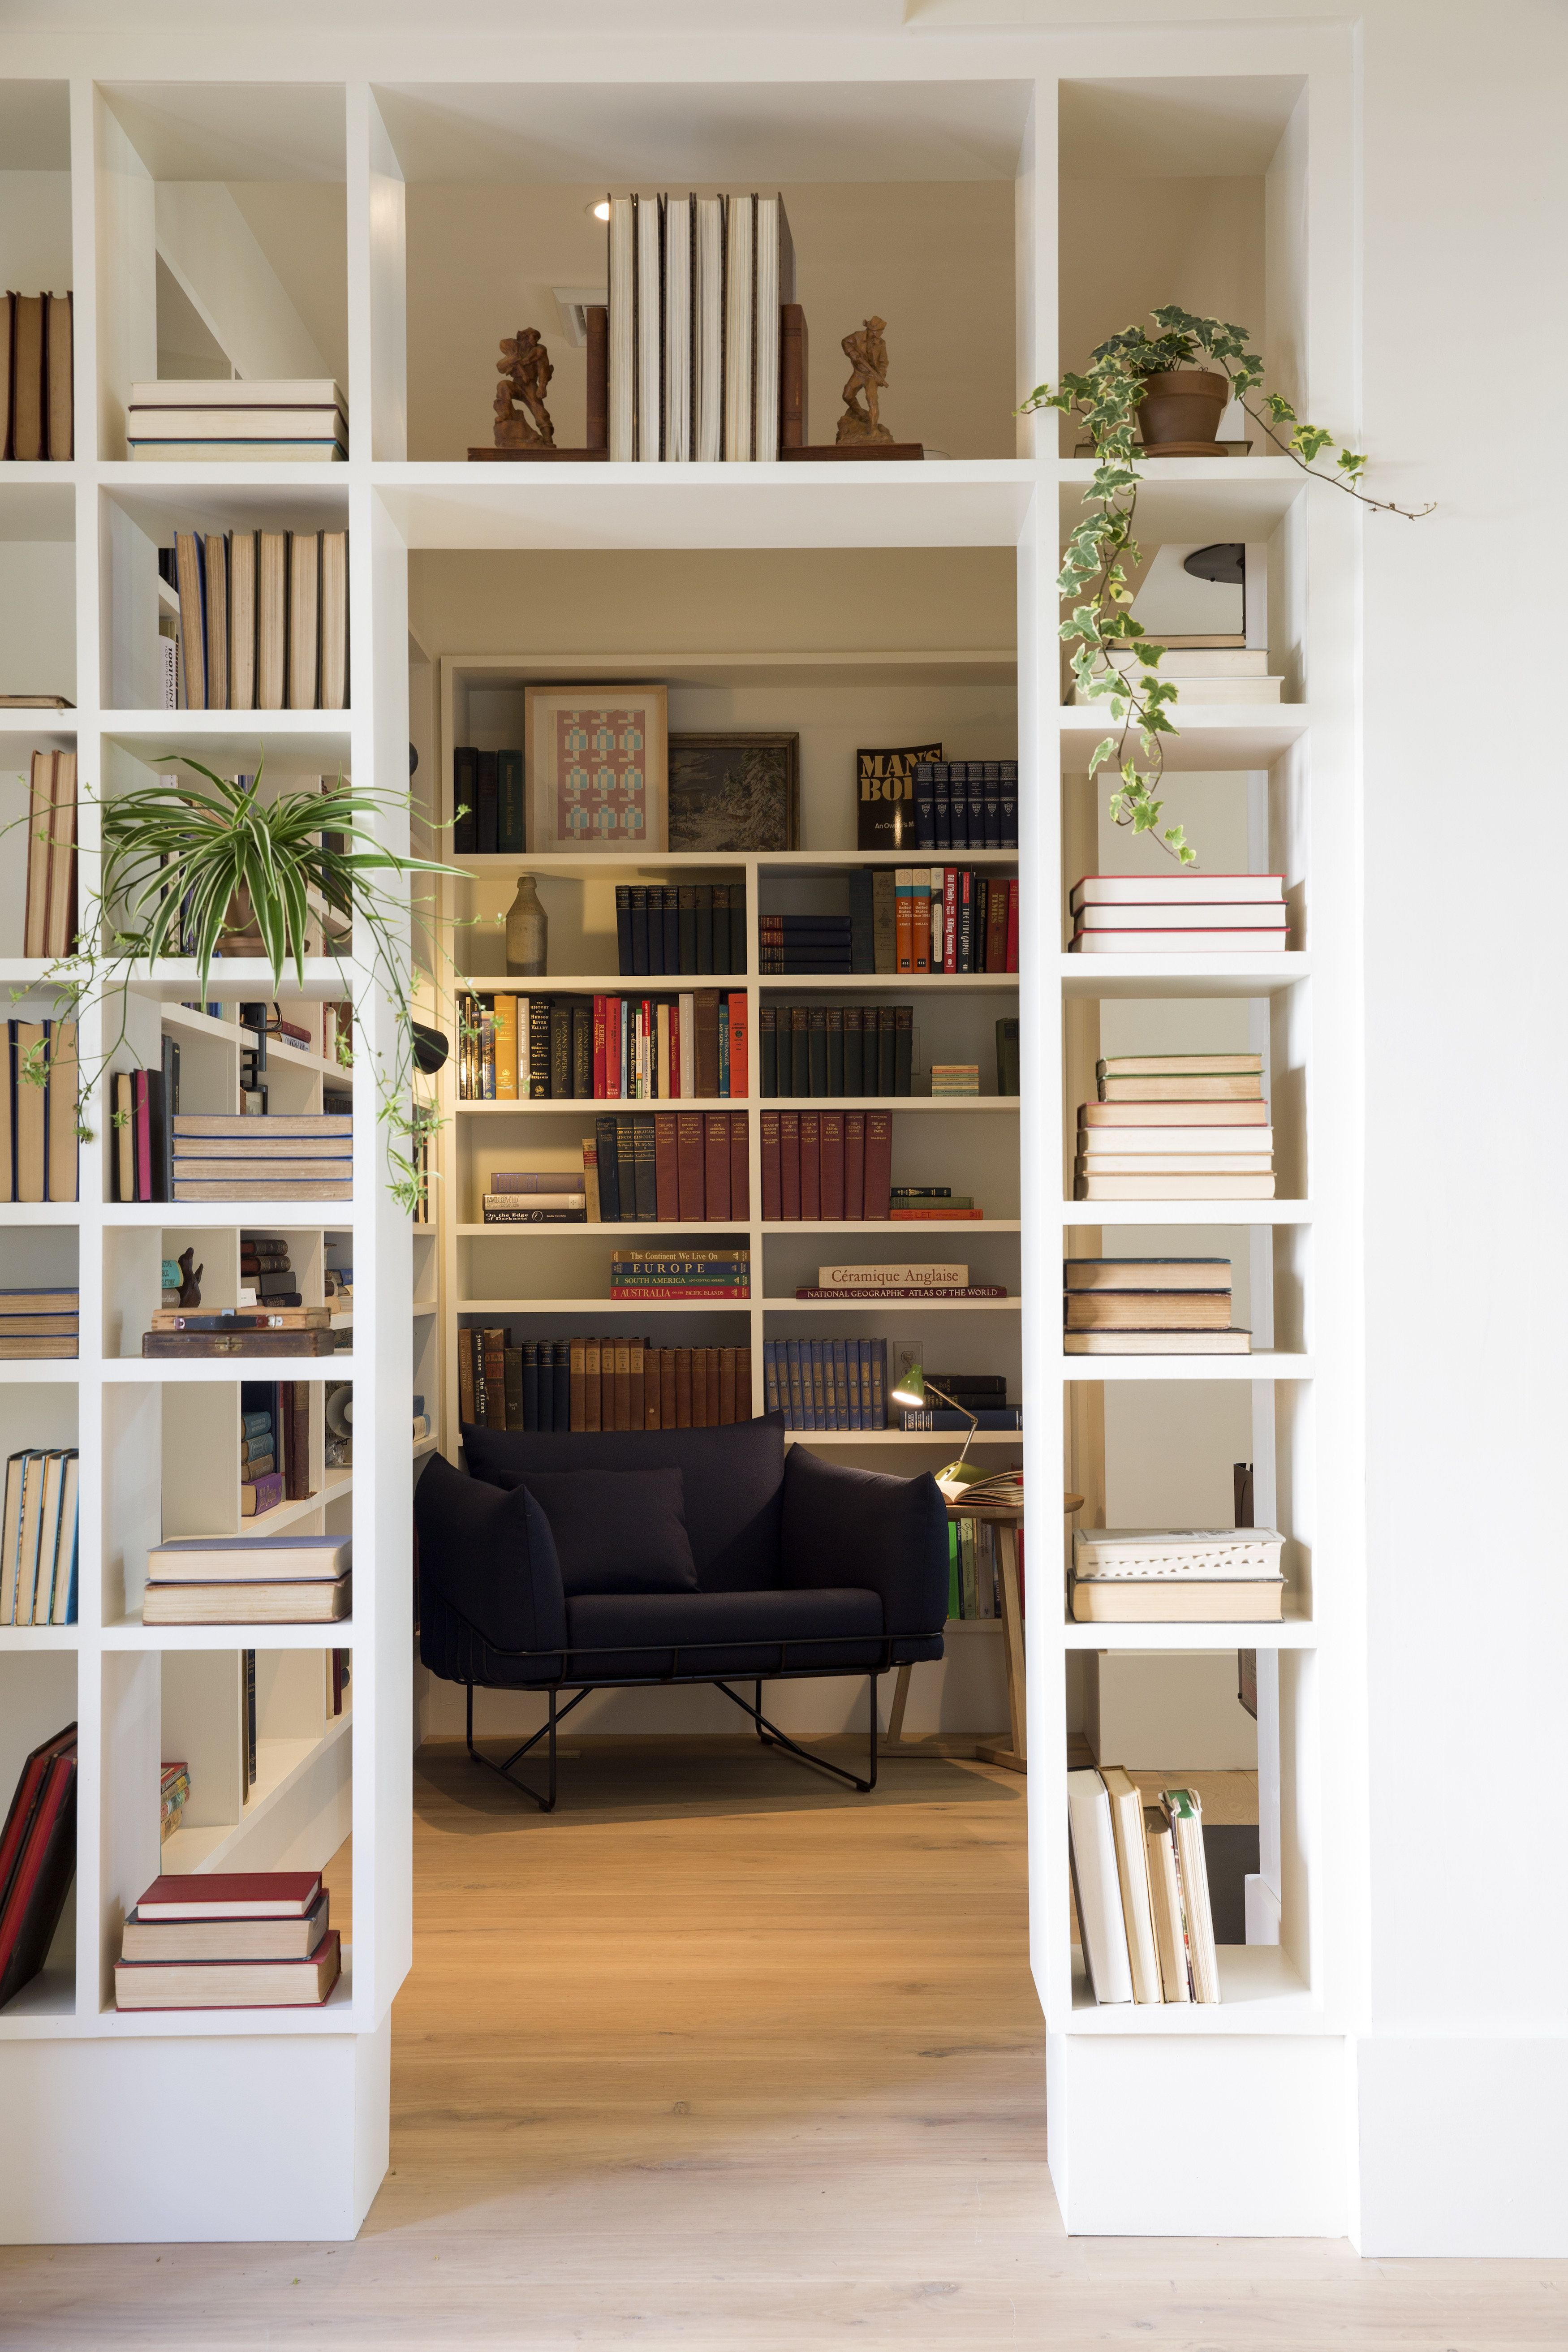 hudson ny hotels rivertown lodge photos architectural digest: living room dividers ideas attractive